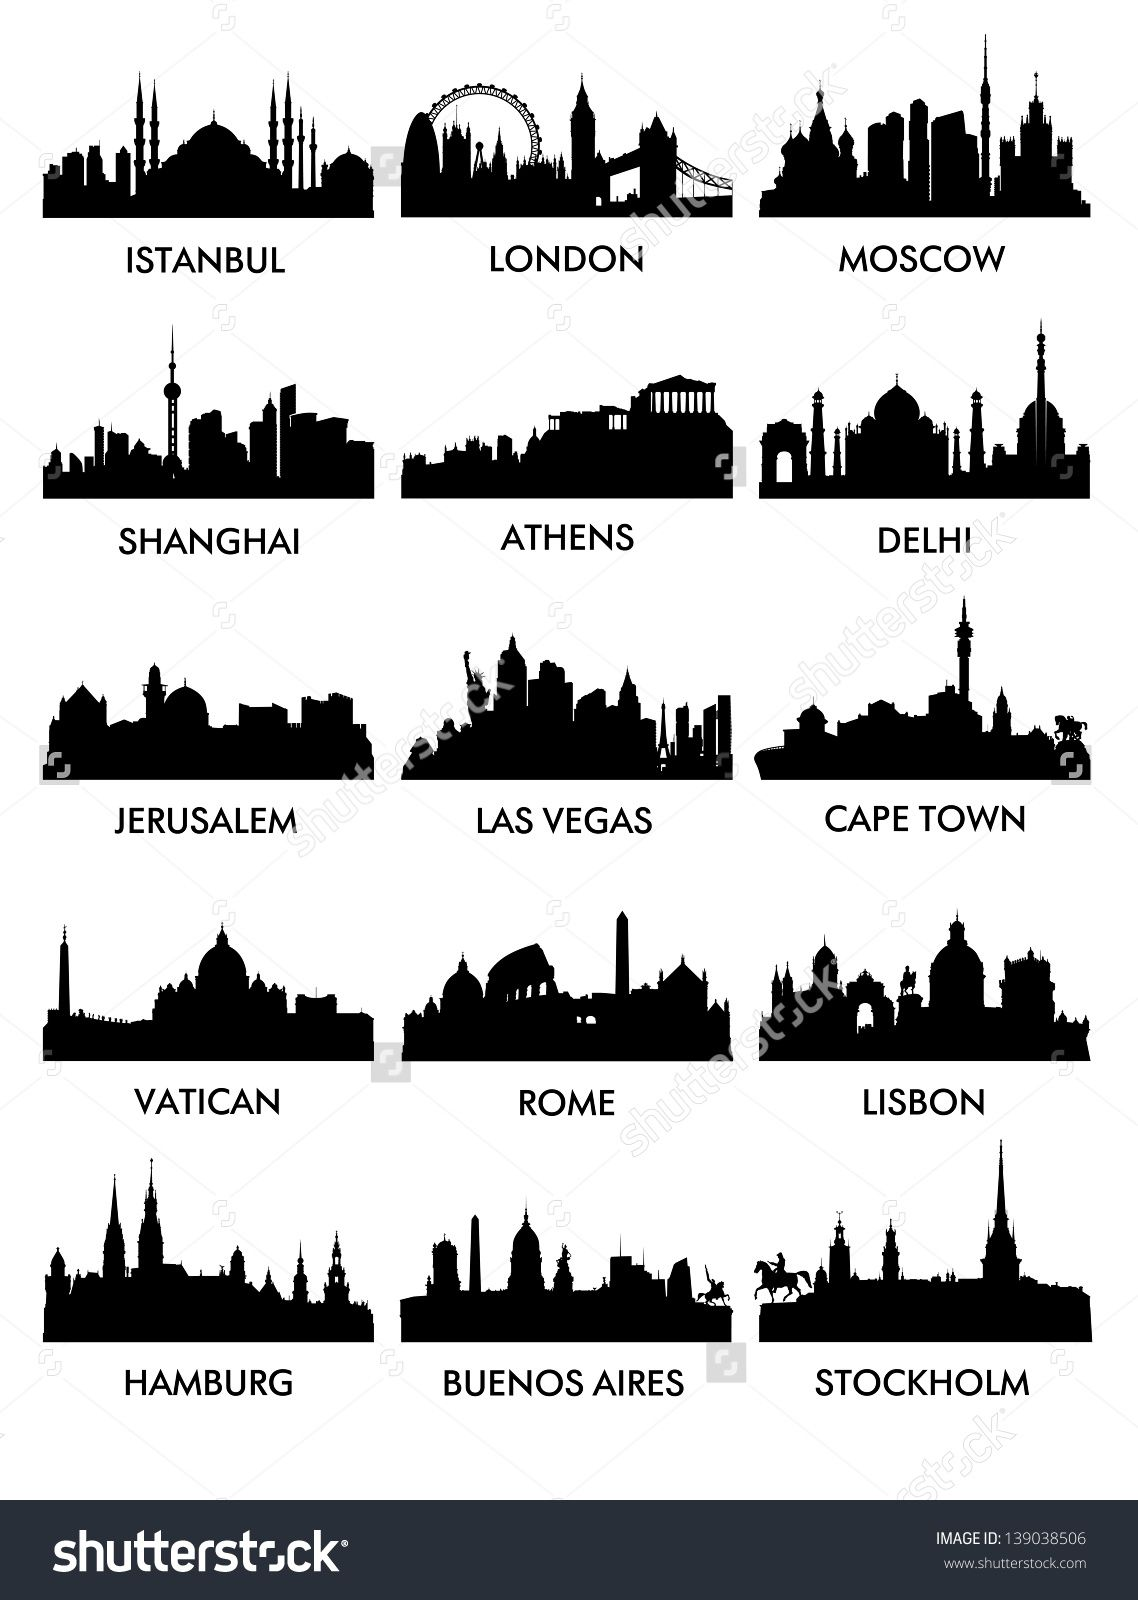 city silhouette vector3 15 mecque pinterest carnets voyages et dessin. Black Bedroom Furniture Sets. Home Design Ideas